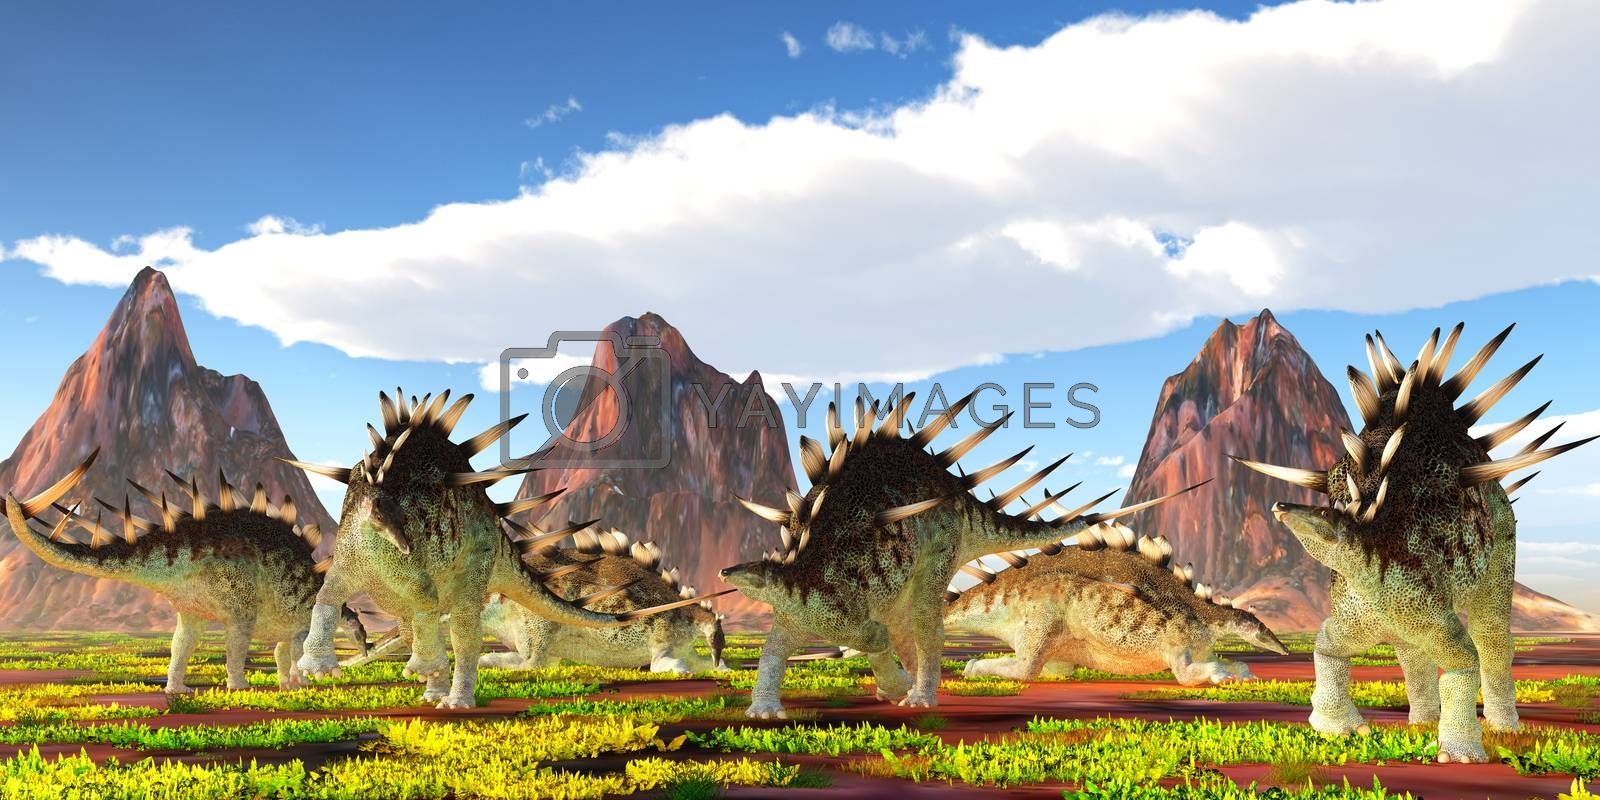 A herd of Kentrosaurus herbivorous dinosaurs feed and rest under nearby mountains during the Jurassic Period of Tanzania.